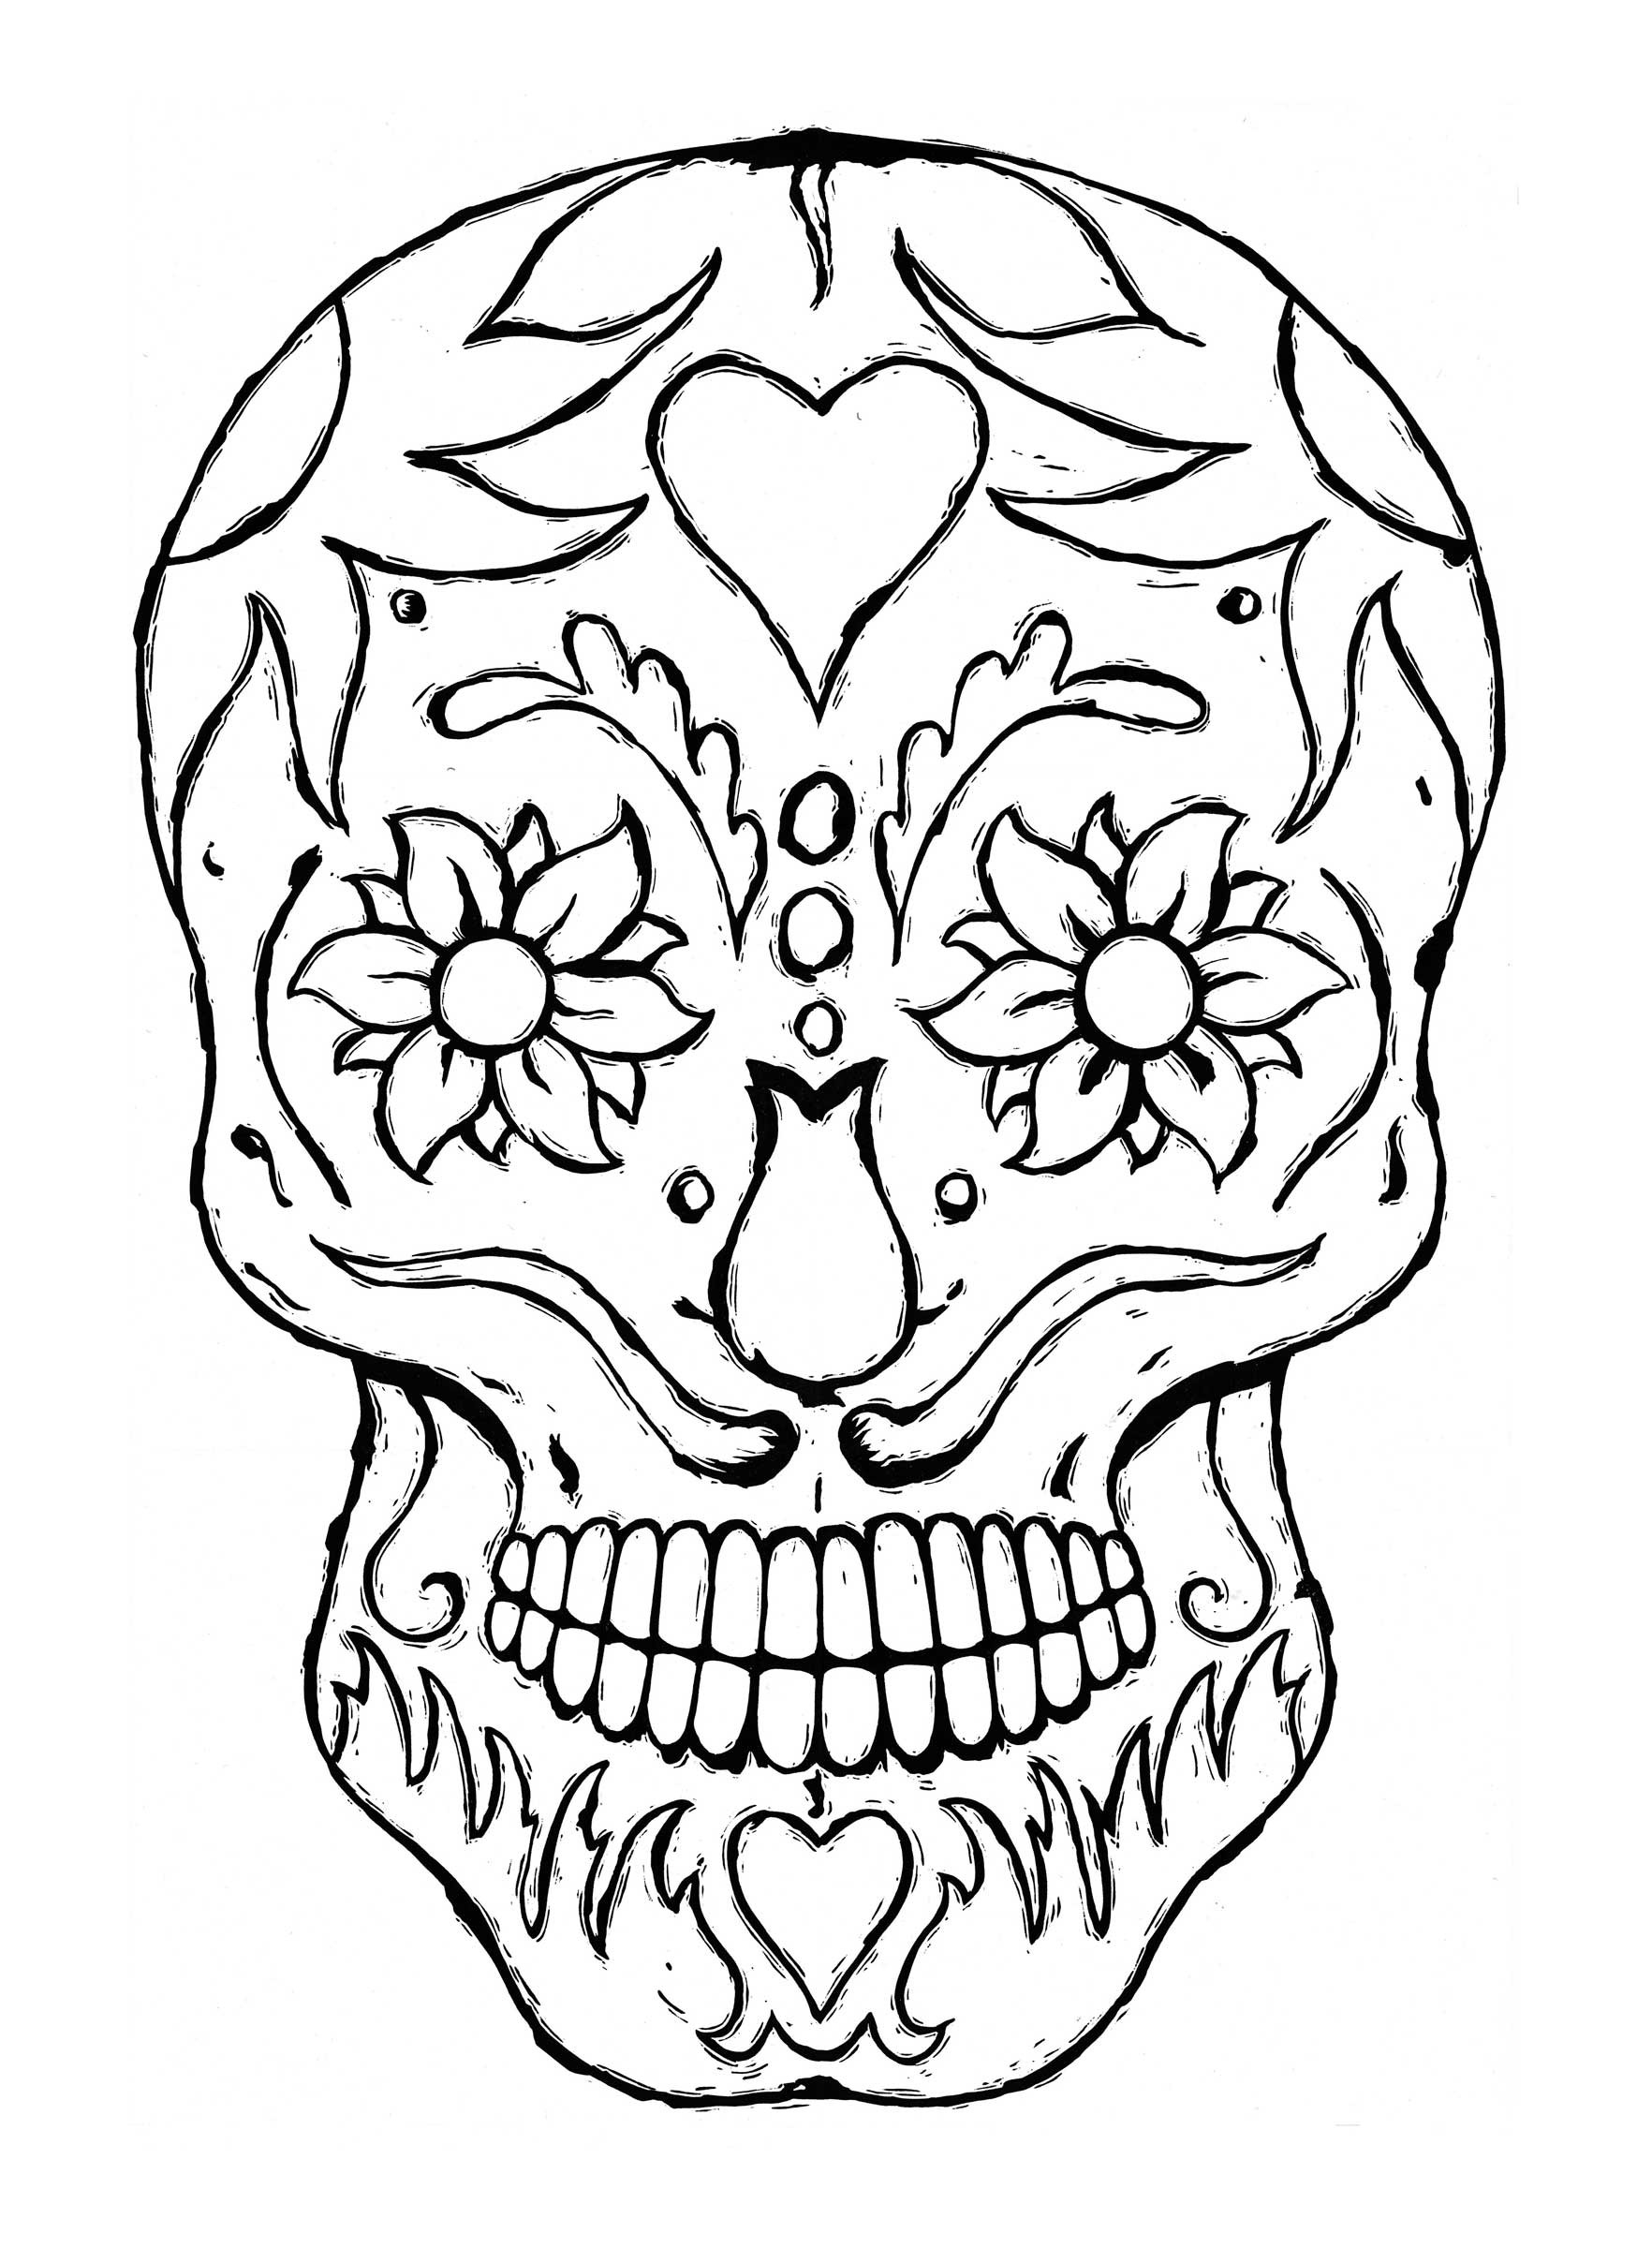 cool coloring pages for adults - cool coloring pages for adults